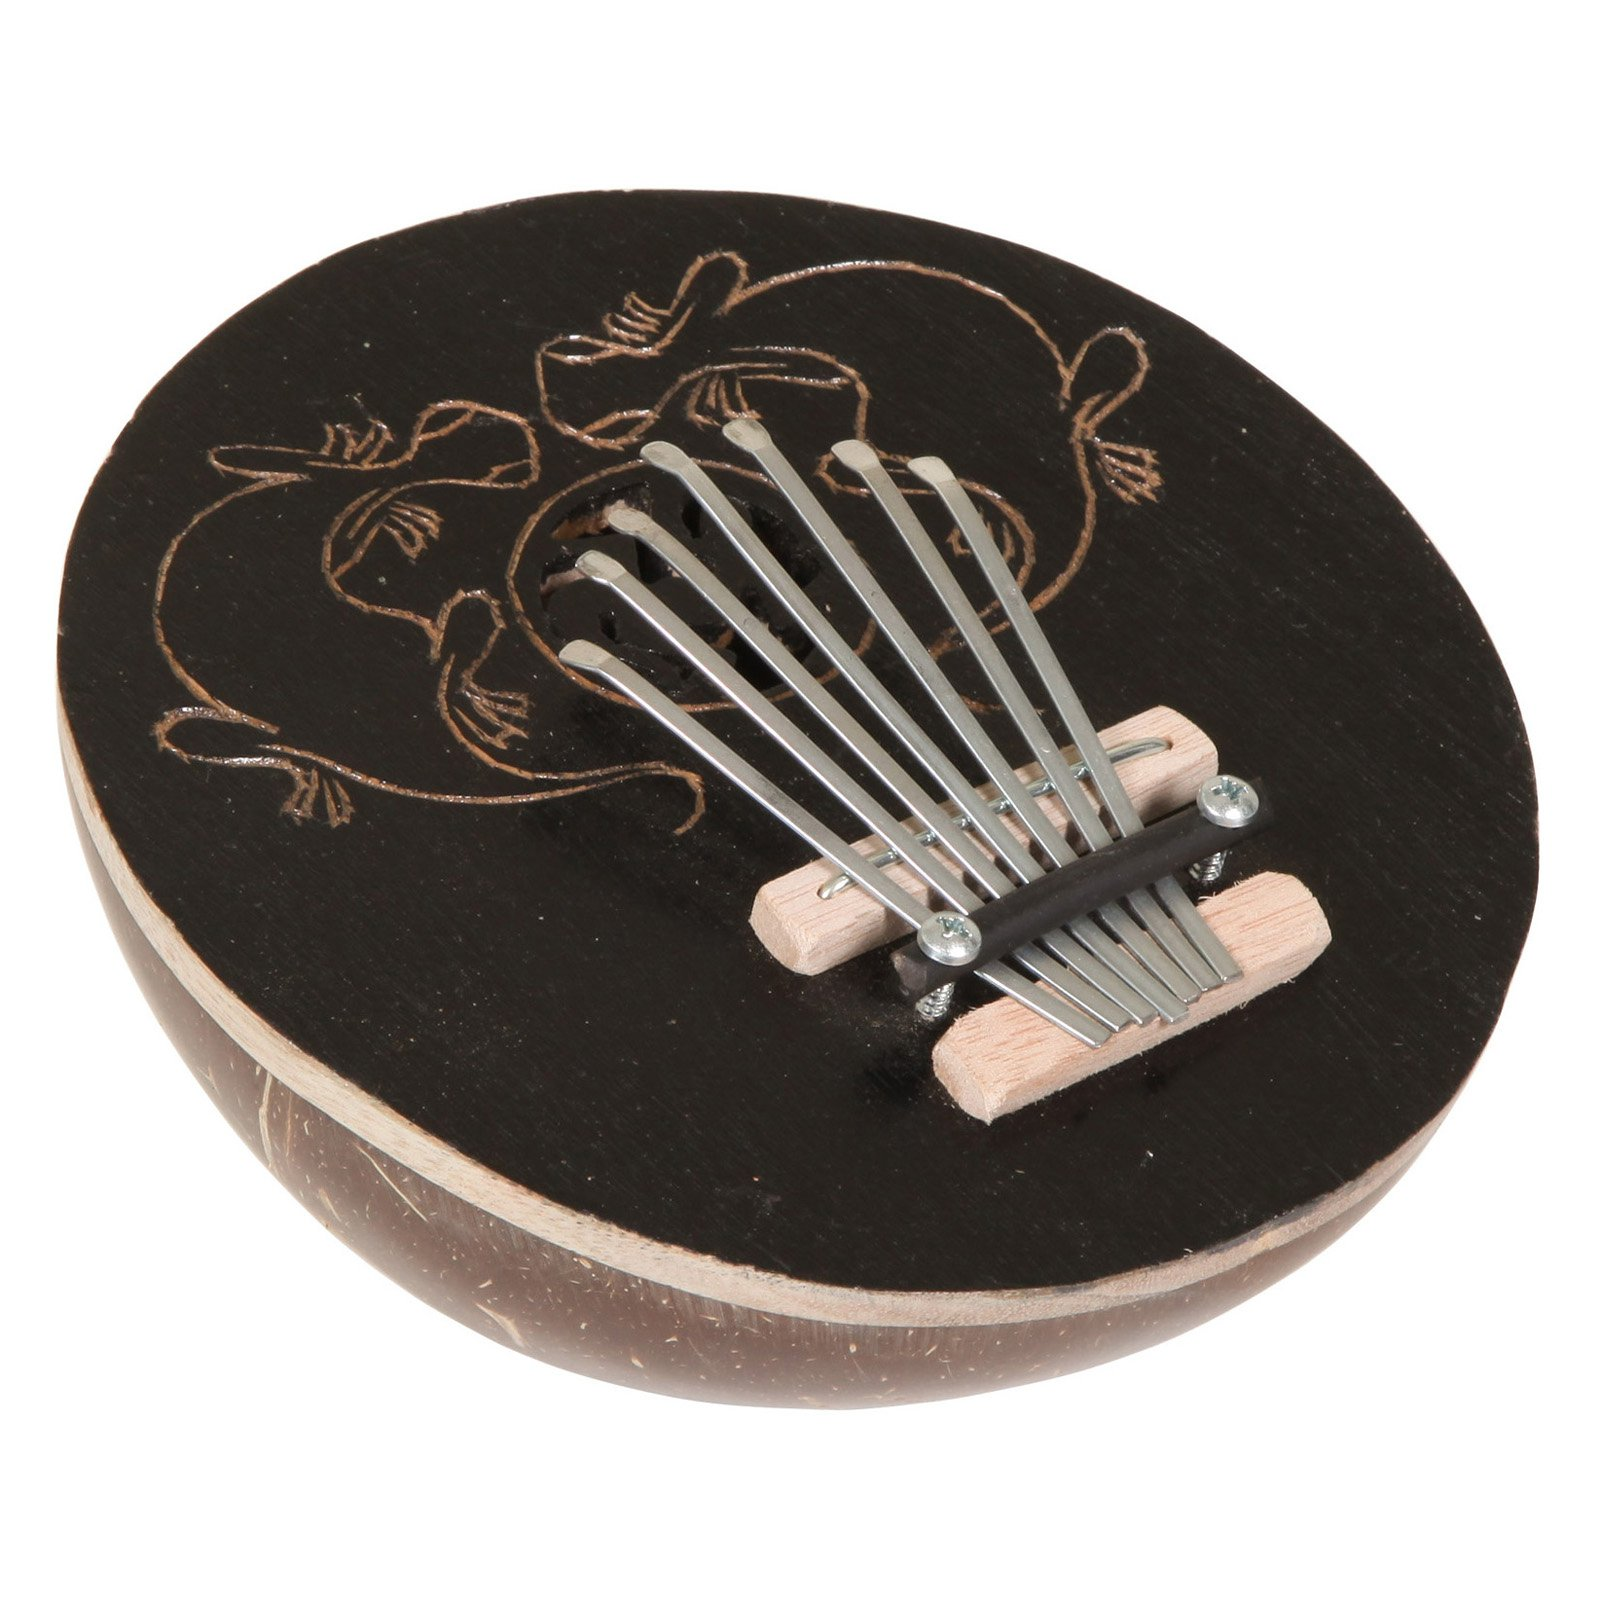 X8 Drums Coconut Kalimba Gecko Thumb Piano